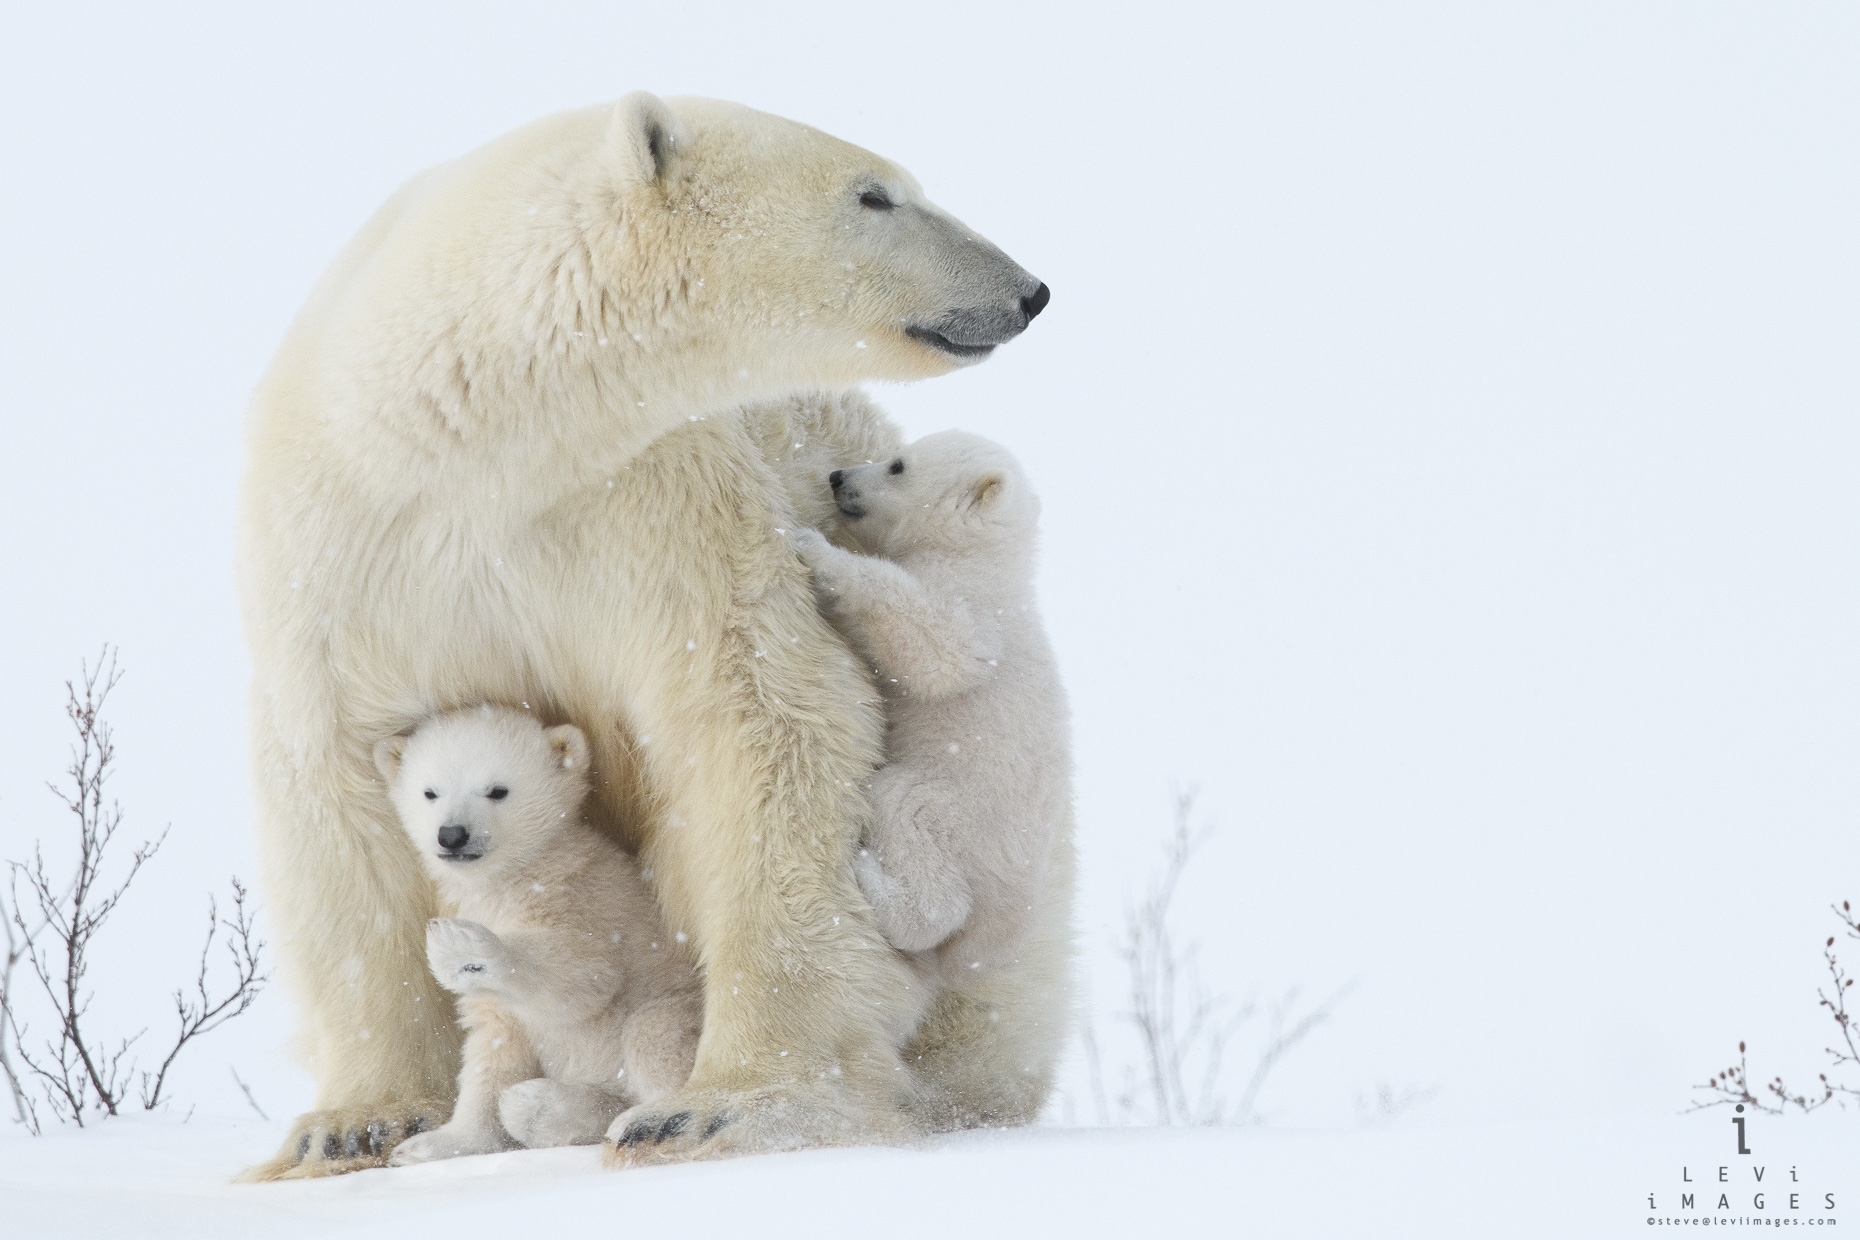 Polar bear (Ursus maritimus) cubs with mom – climbing and waving. Wapusk National Park, Manitoba, Canada